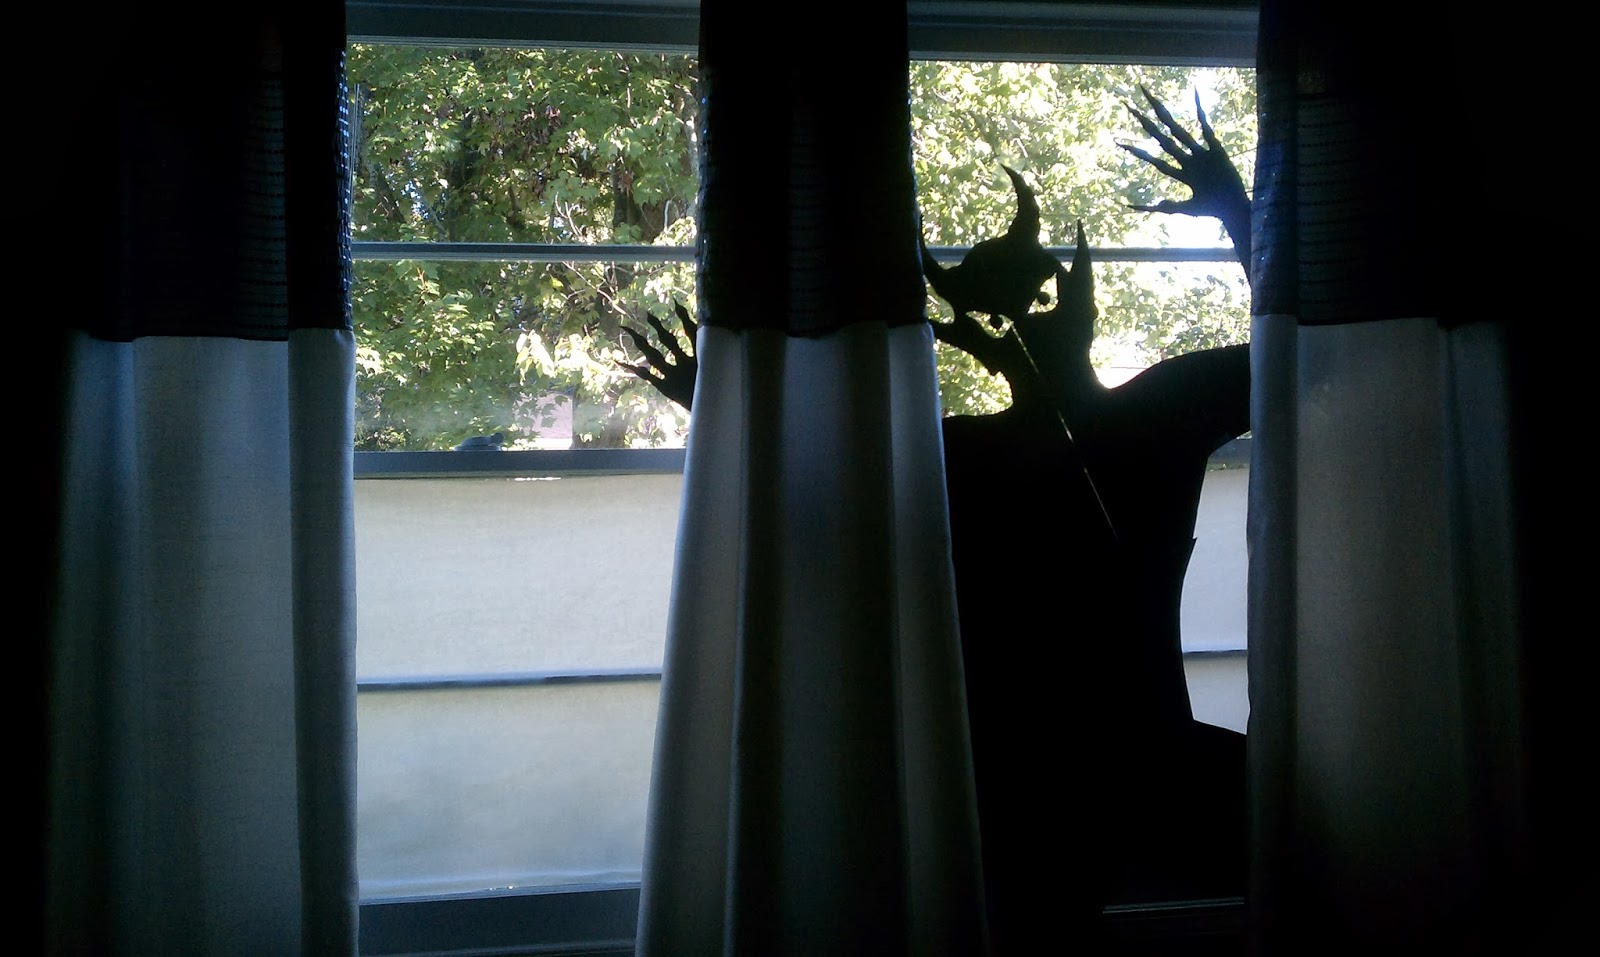 nadia's diy projects: diy halloween window silhouettes